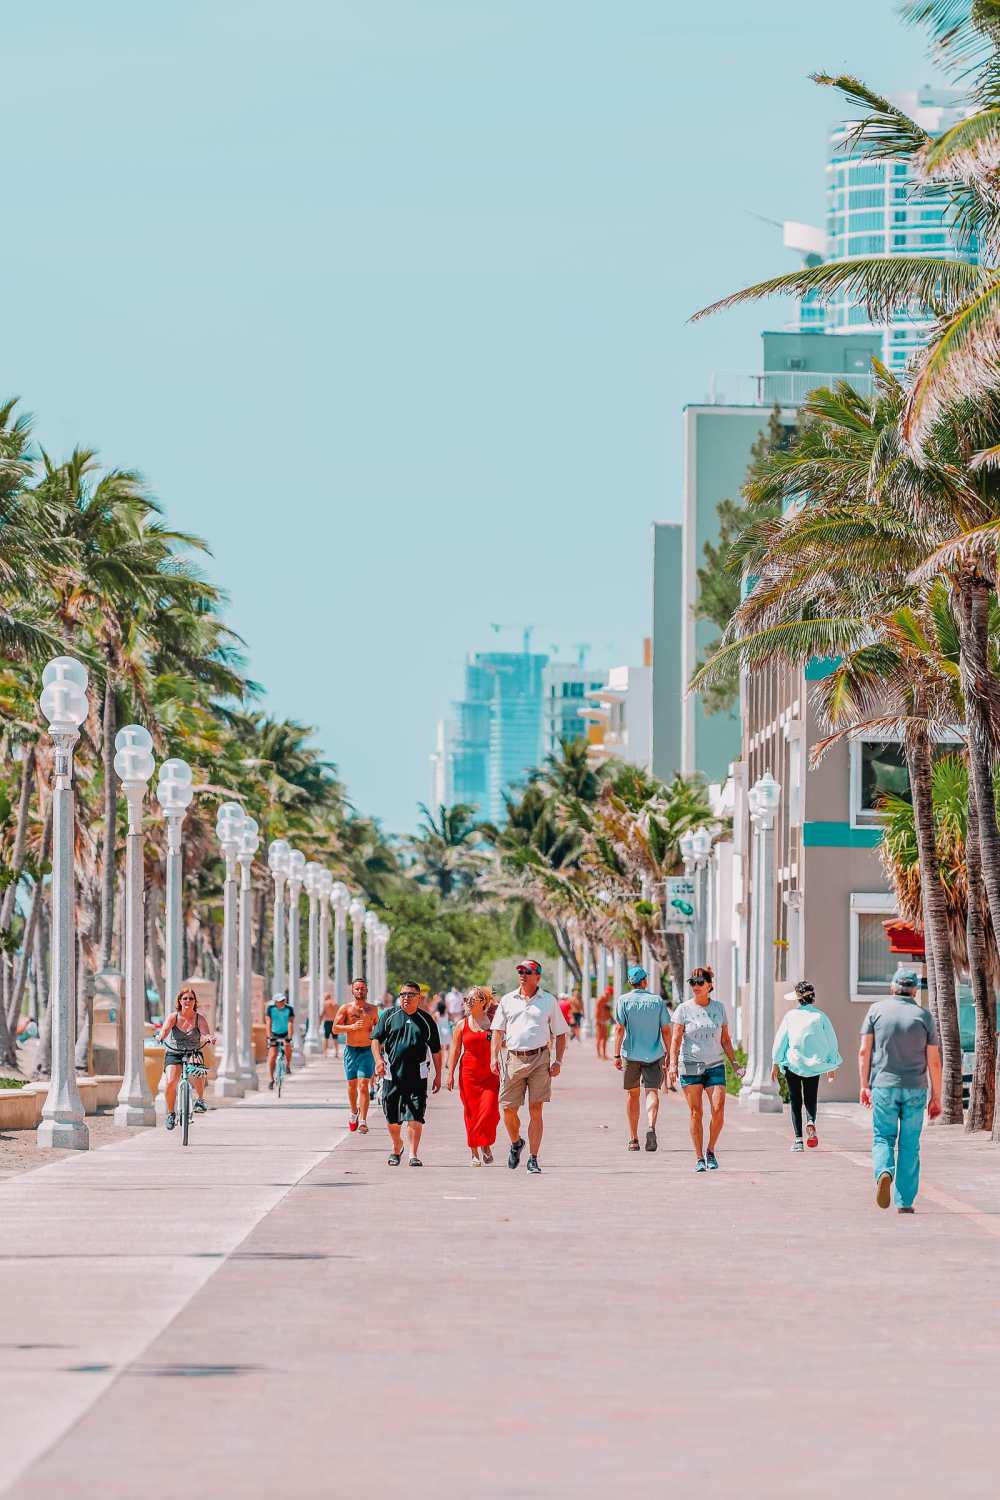 Best Things To Do In Hollywood Florida (8)